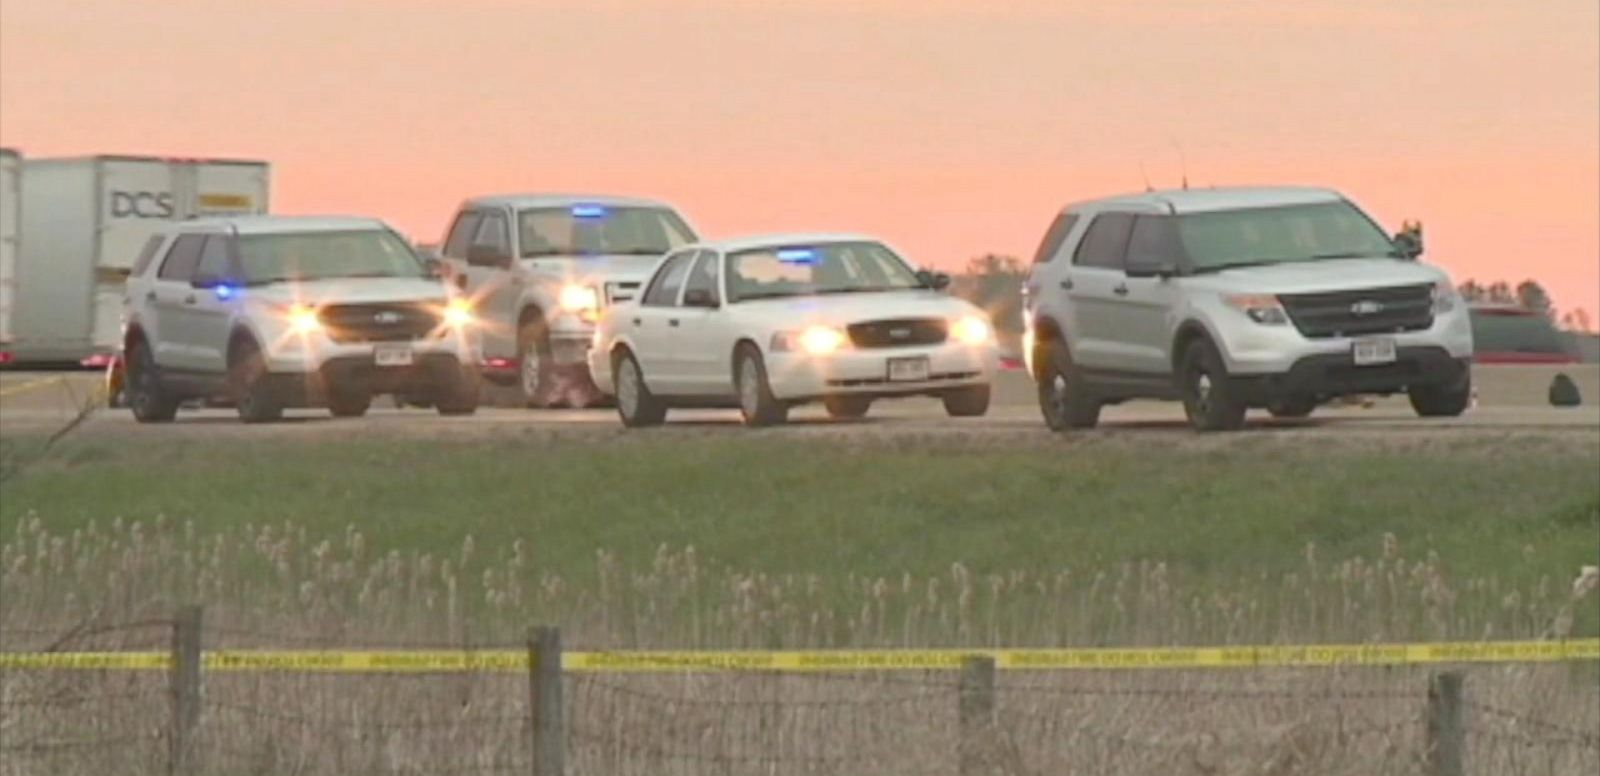 "VIDEO: Police say the shooting on Interstate 90/94 in Wisconsin was a ""random act"" and that the alleged gunman is in custody."